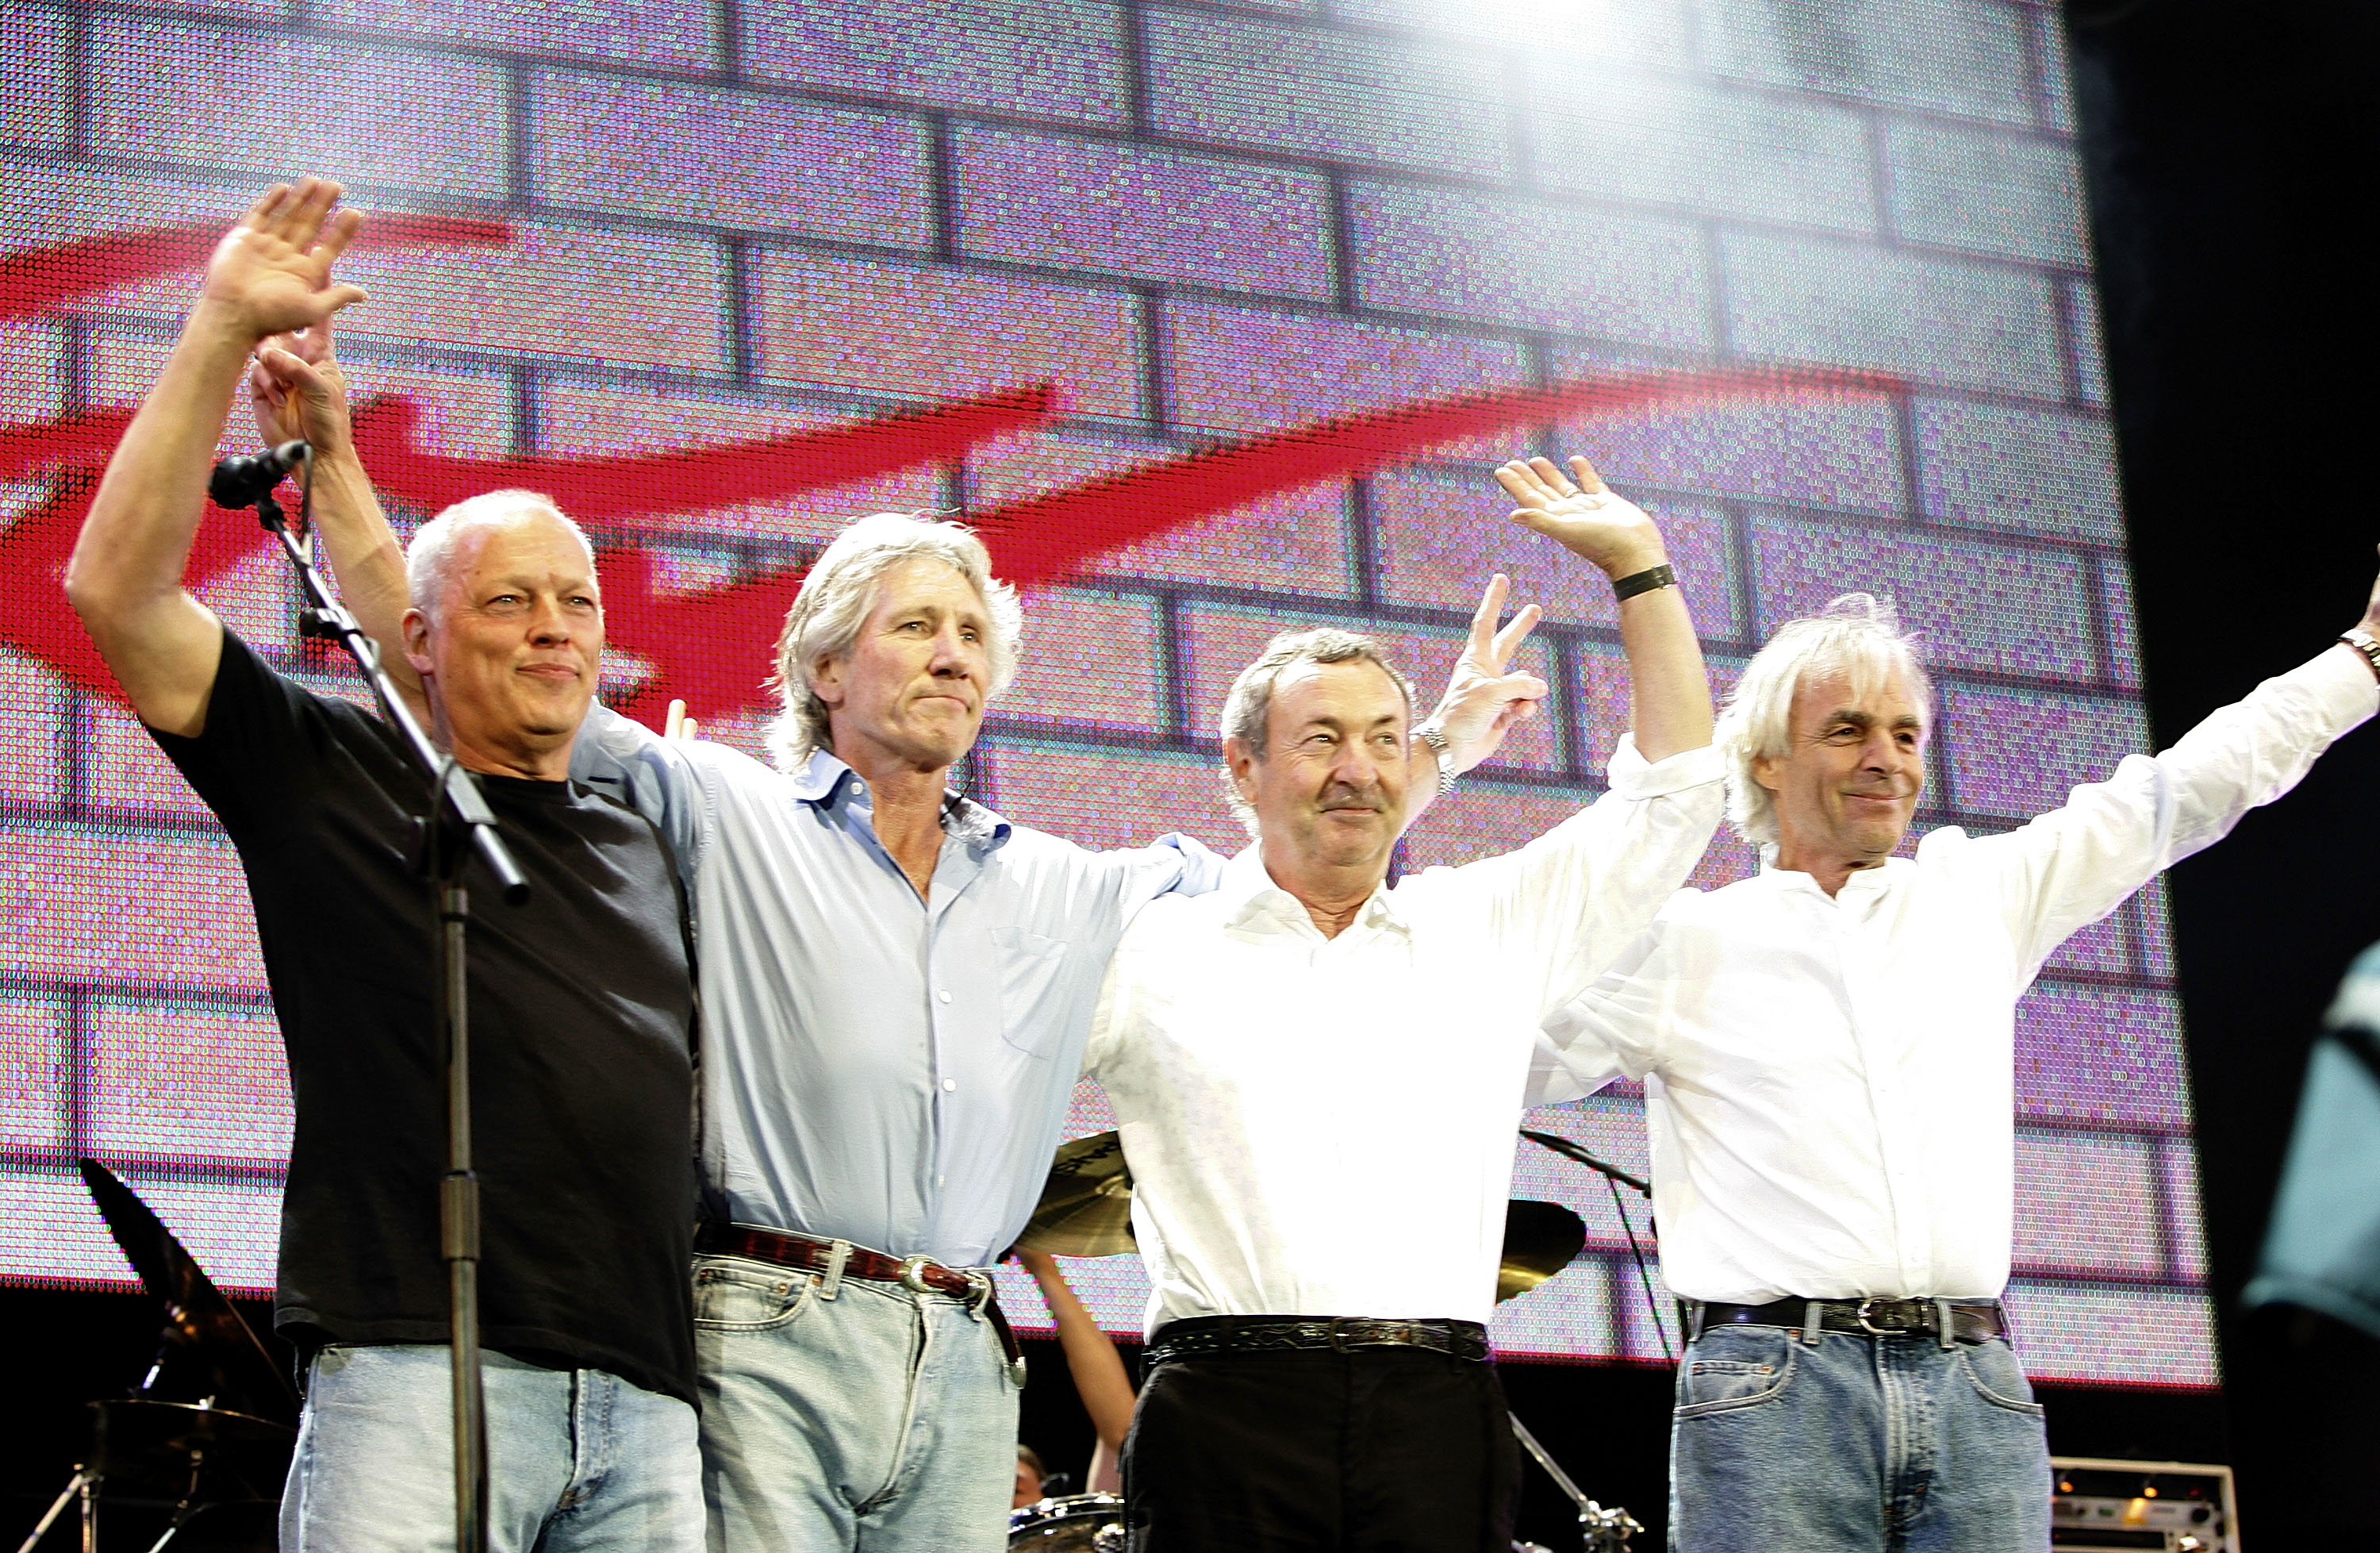 """LONDON - JULY 02: (L to R) David Gilmour, Roger Waters, Nick Mason and Rick Wright from the band Pink Floyd on stage at """"Live 8 London"""" in Hyde Park on July 2, 2005 in London, England. The free concert is one of ten simultaneous international gigs including Philadelphia, Berlin, Rome, Paris, Barrie, Tokyo, Cornwall, Moscow and Johannesburg. The concerts precede the G8 summit (July 6-8) to raising awareness for MAKEpovertyHISTORY."""